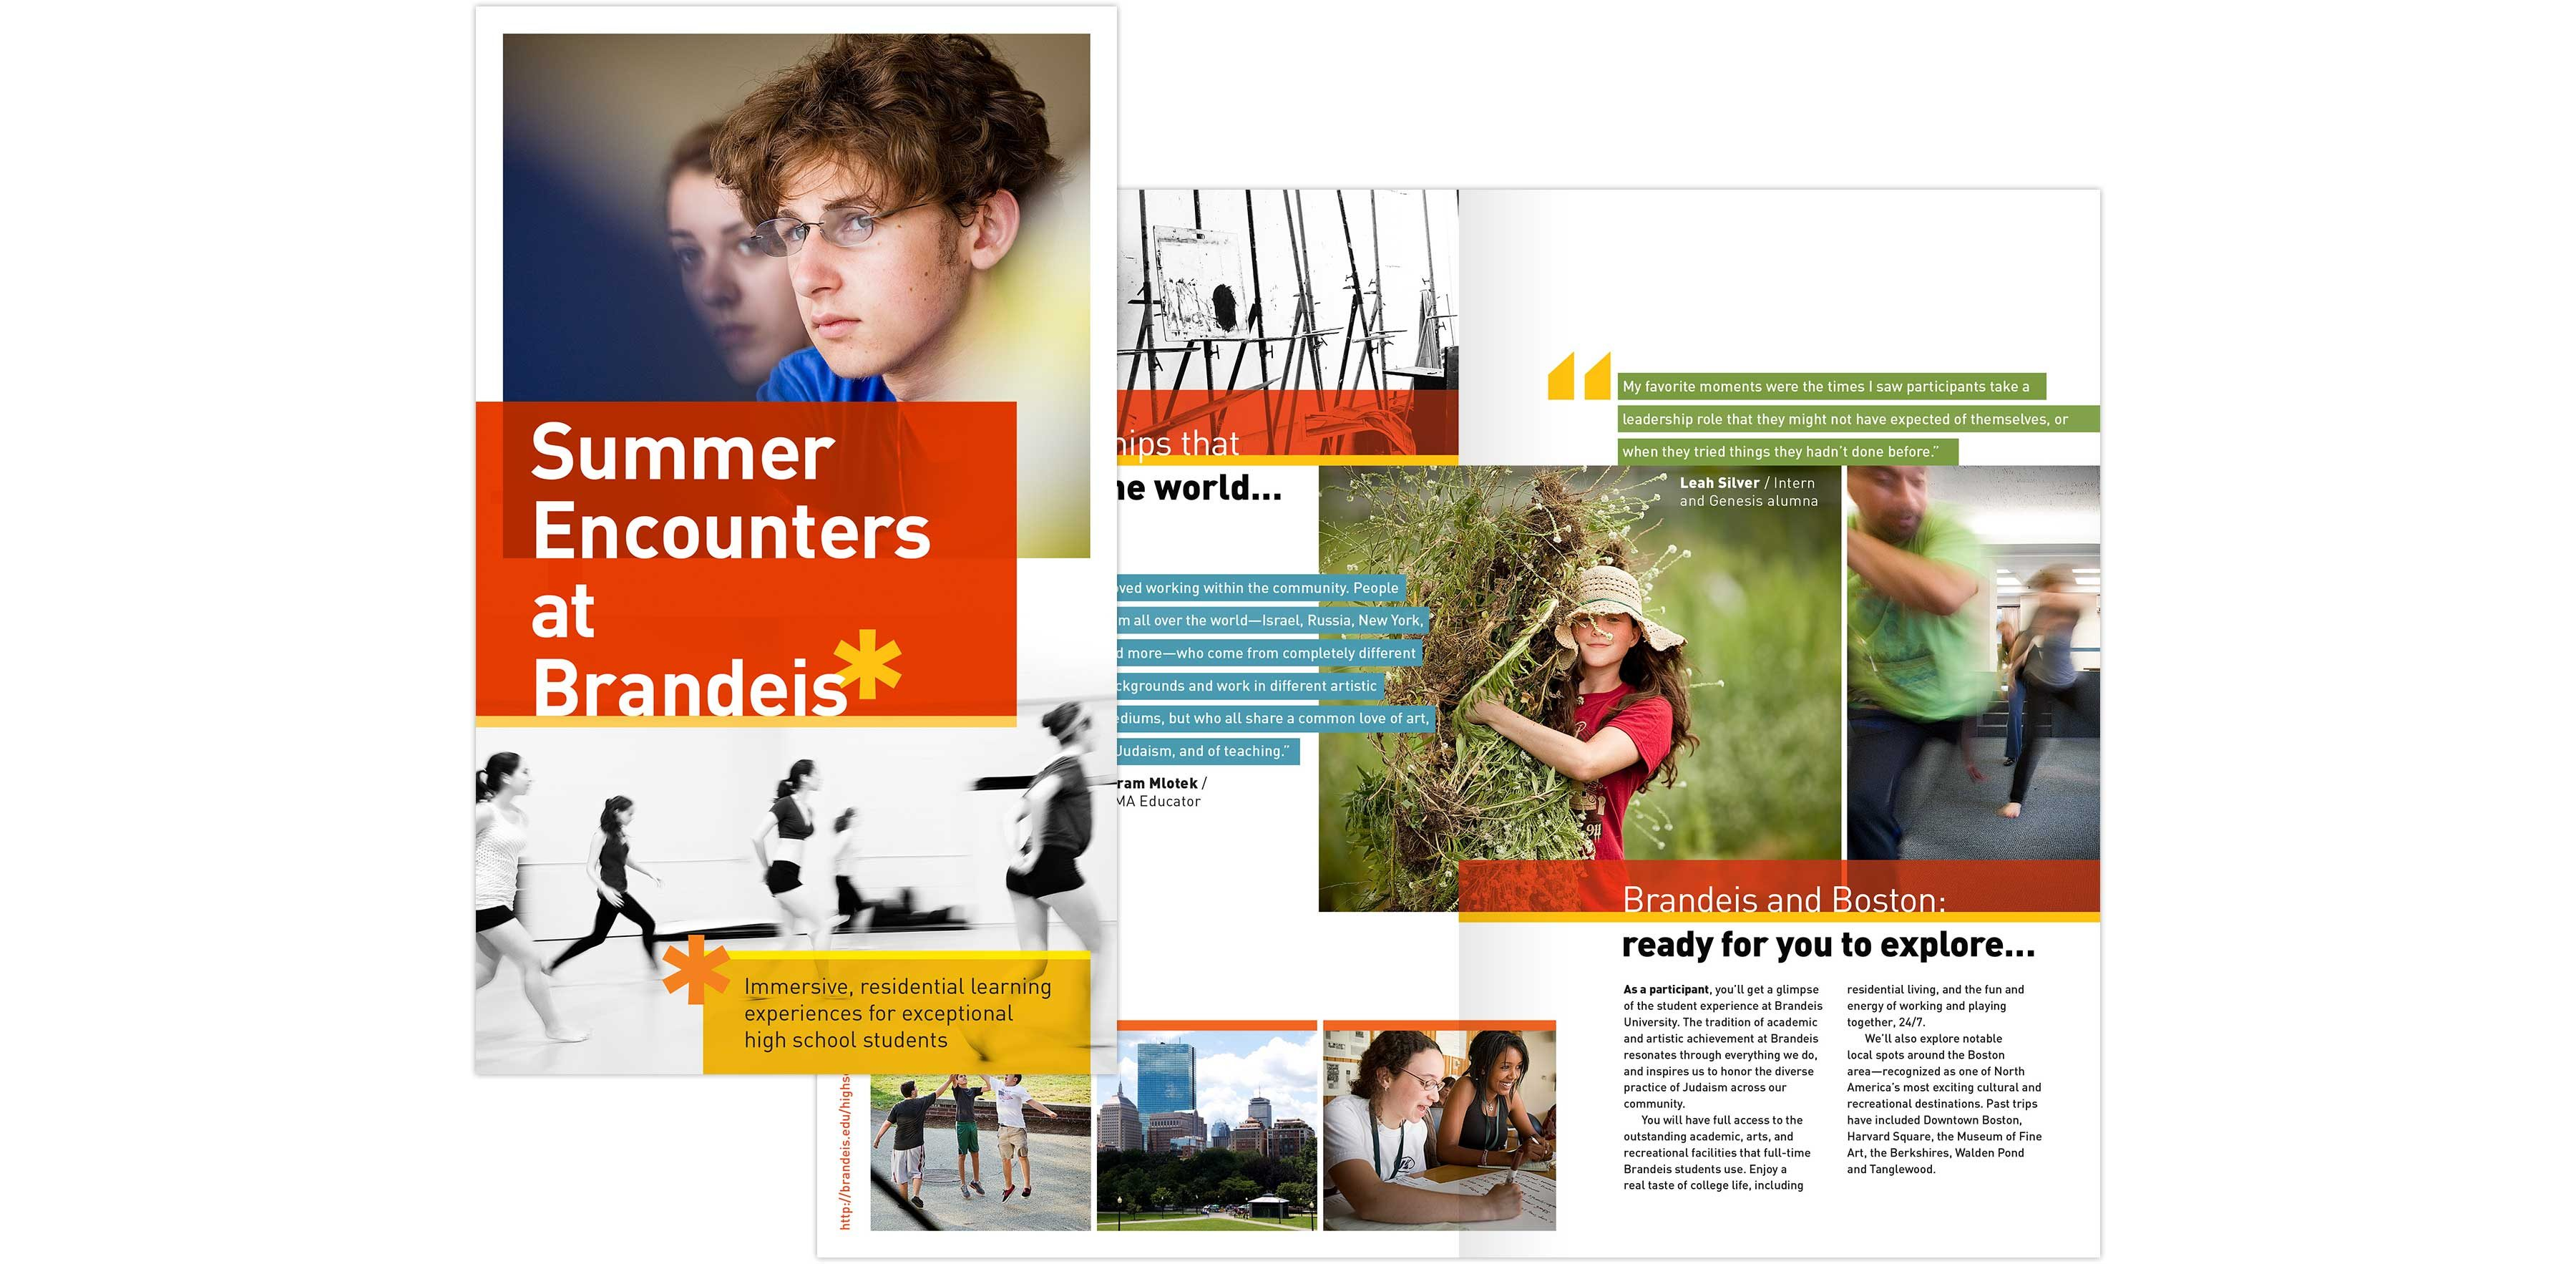 Brandeis High School Program viewbook cover and interior spread: Summer Encounters at Brandeis